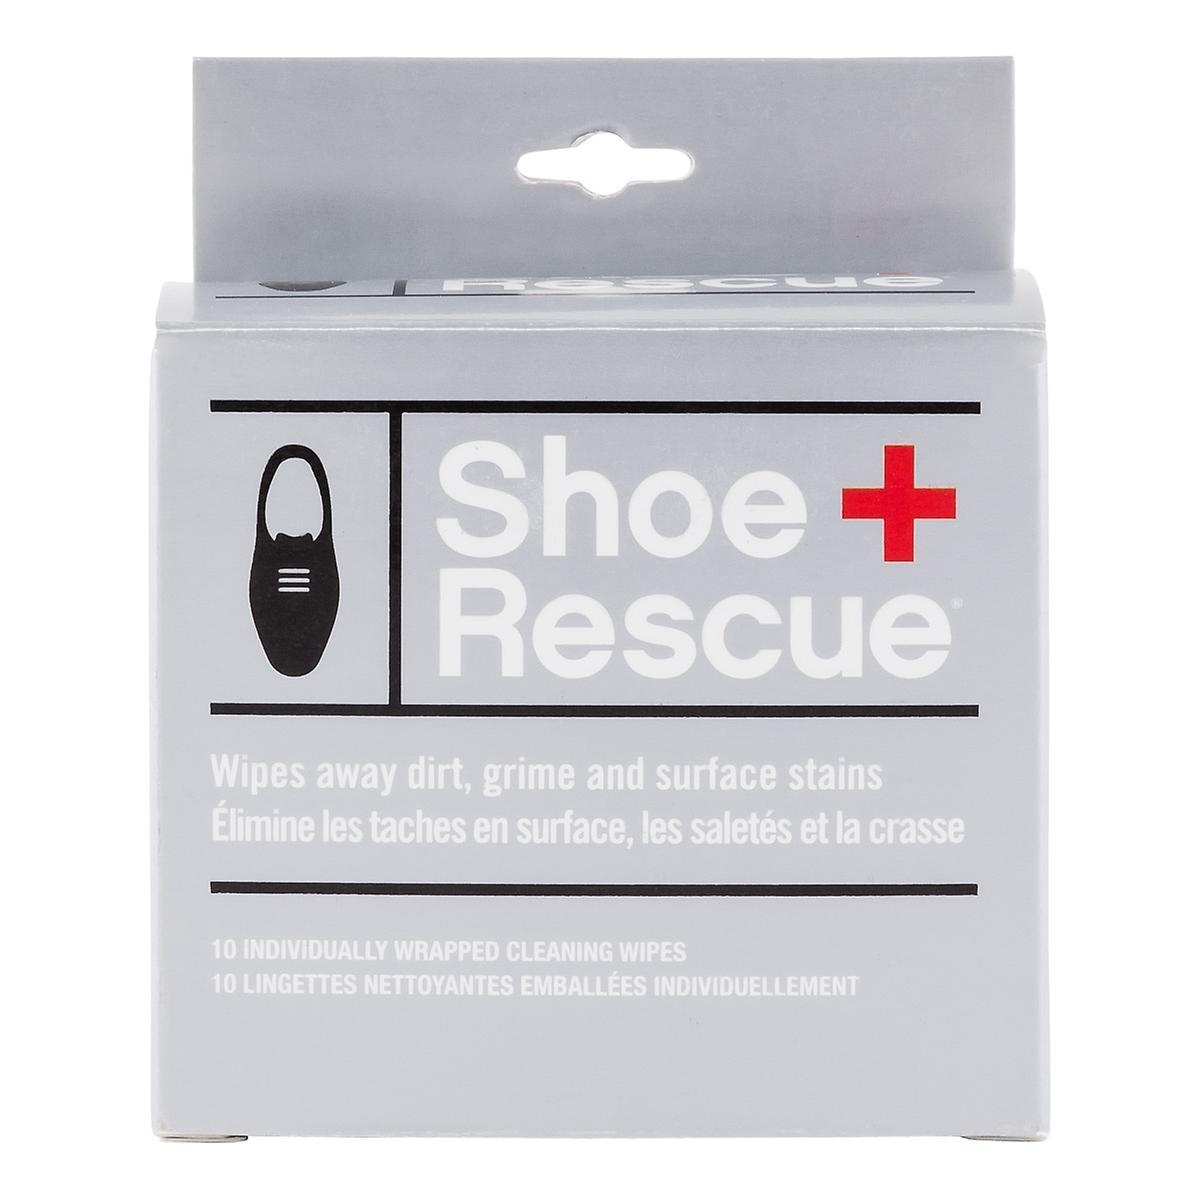 BOOT RESCUE - SHOE RESCUE WIPES 10